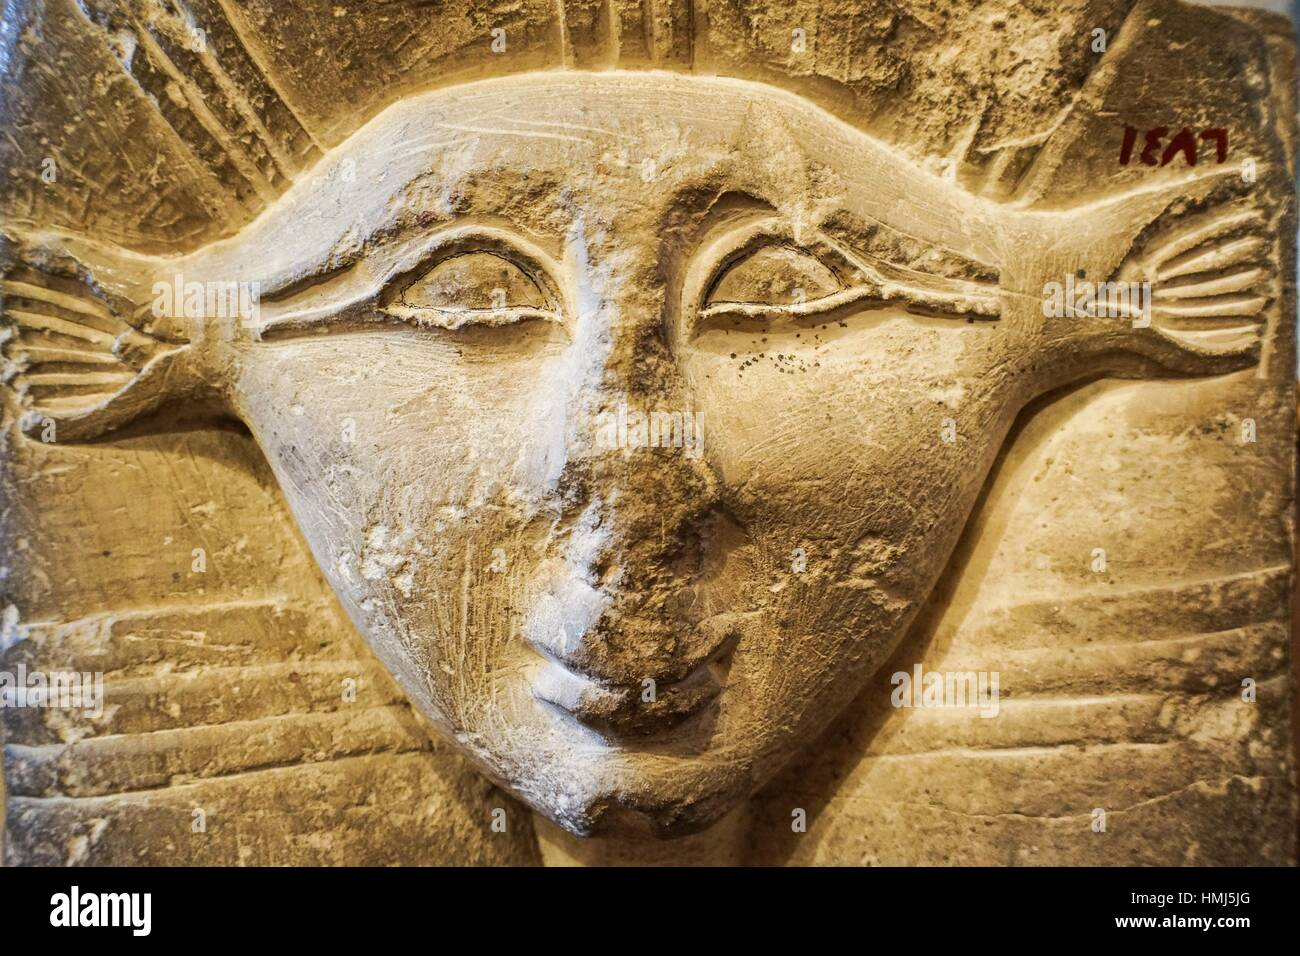 Hathor Goddess of feminine love and motherhood. Egyptian Pharaonic collection. Gayer Anderson Museum. Cairo, Egypt - Stock Image